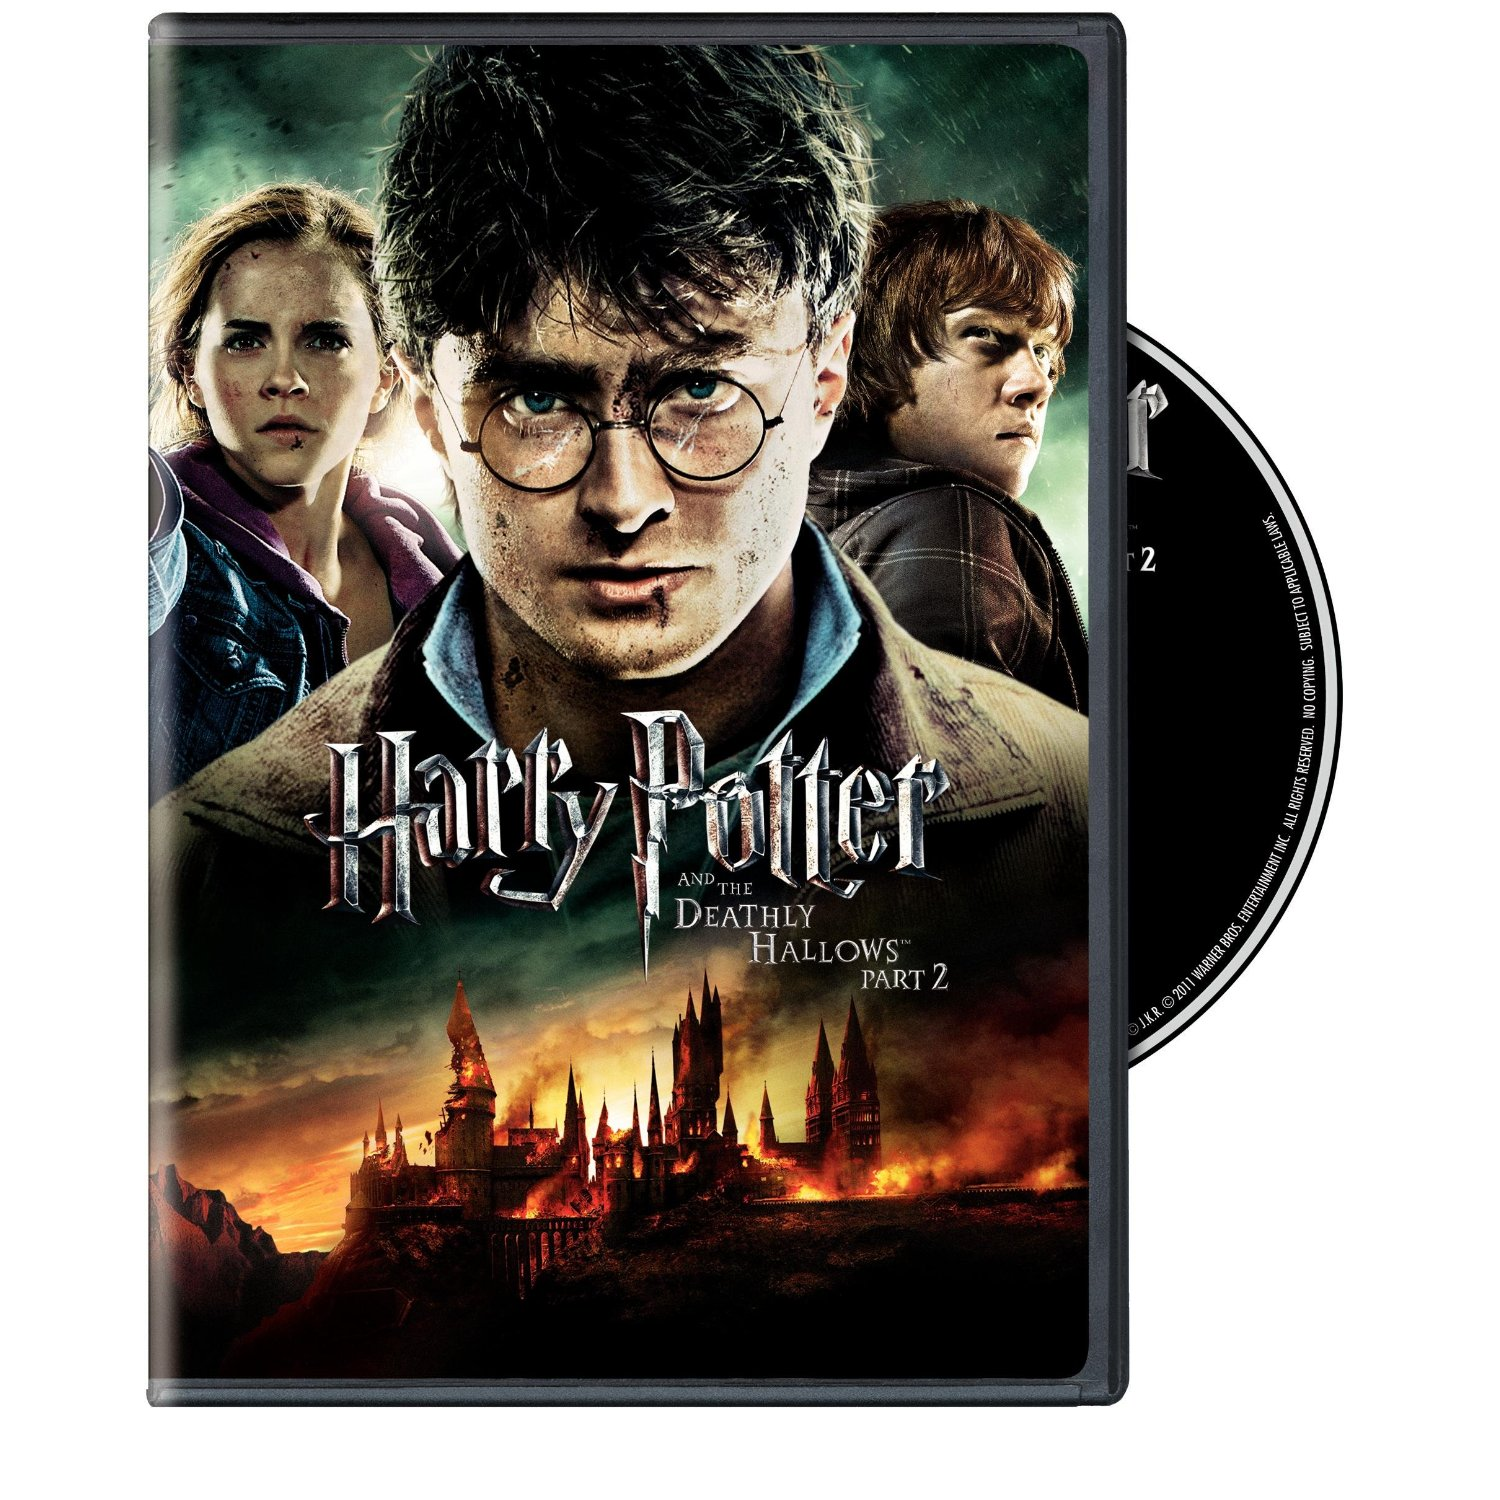 Available on Blu-Ray & DVD, Harry Potter and the Deathly Hallows Part 2 #Giveaway